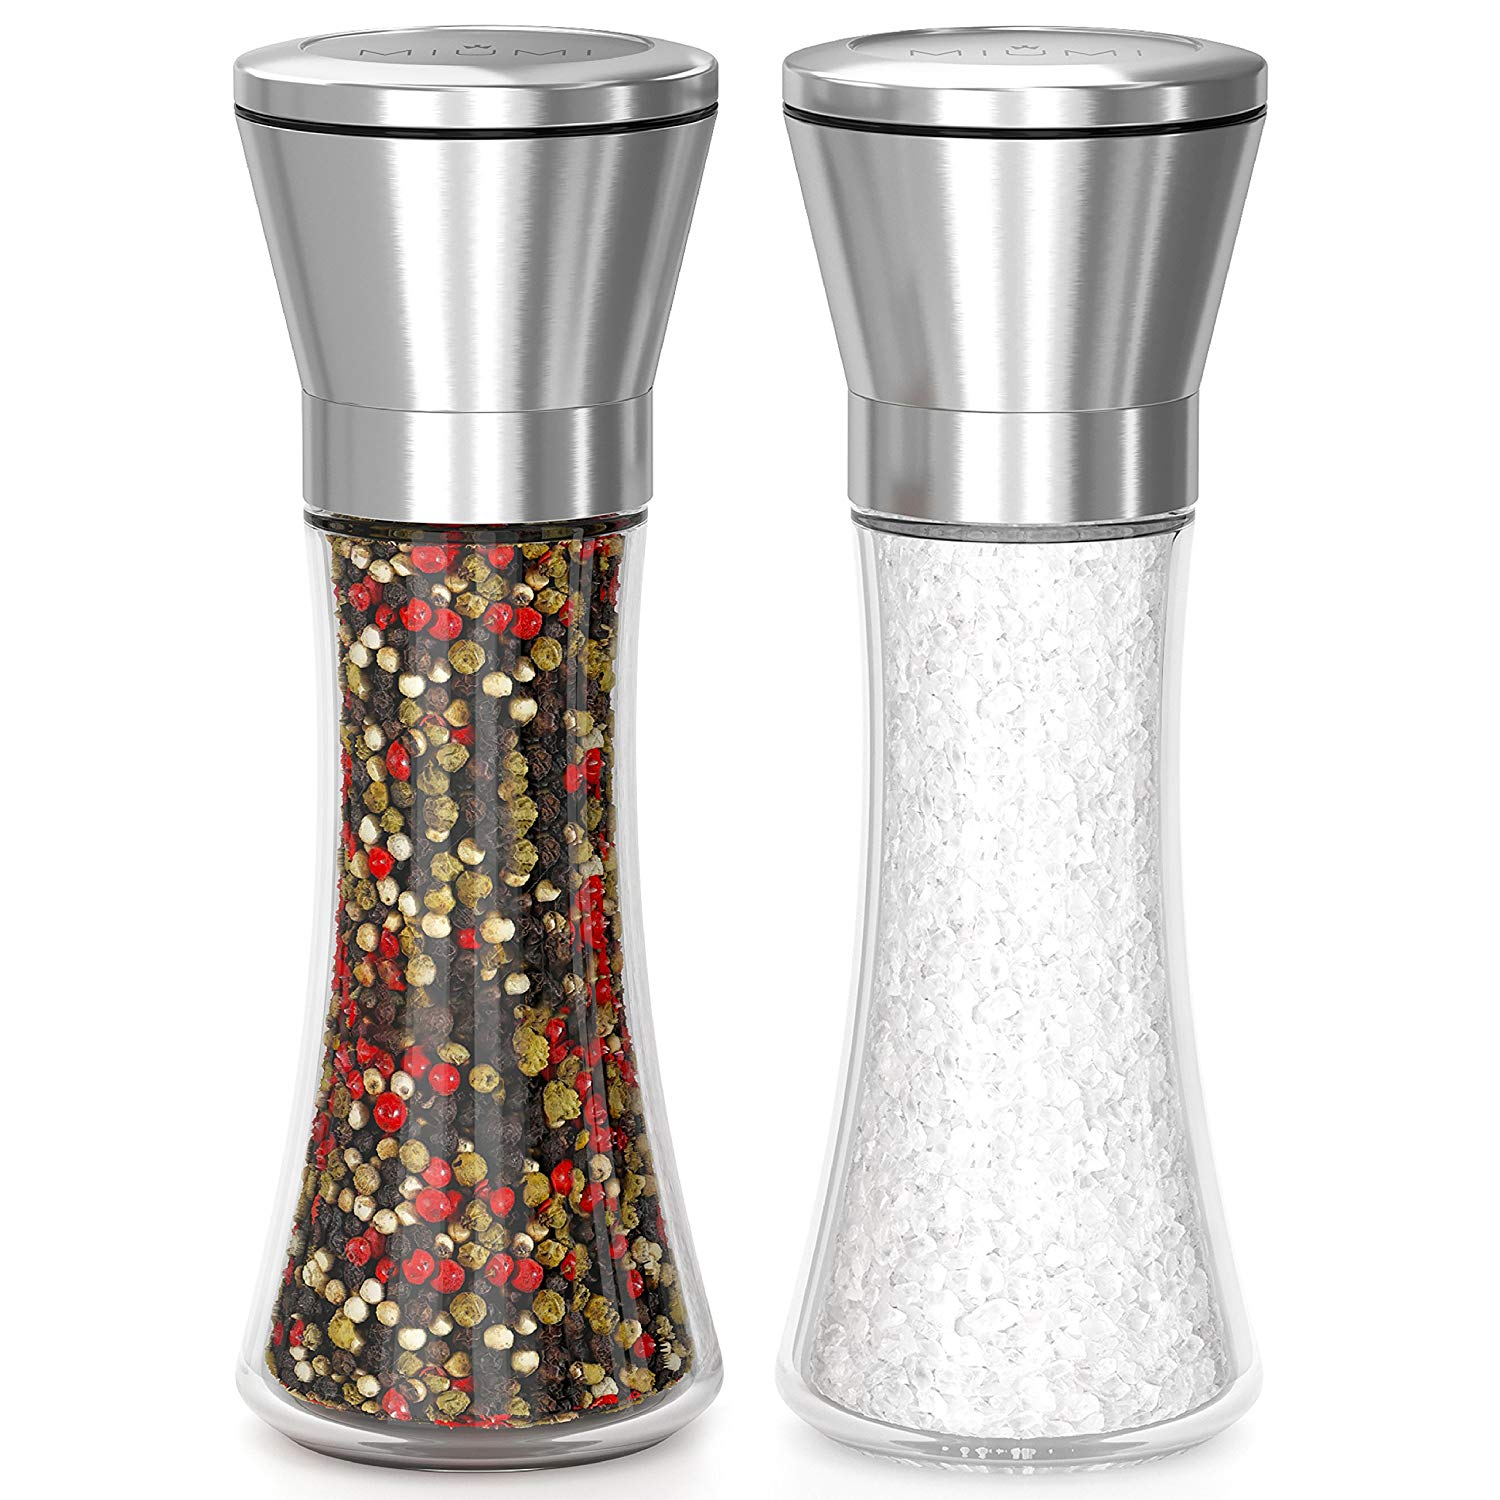 "SALE! Quality Salt and Pepper grinder set, Easy to Use and Adjustable Pepper Mill Set, Stainless Steel Spice Grinder with Large Capacity! Premium Pepper Grinder - set of 2 (7.5"" tall)"